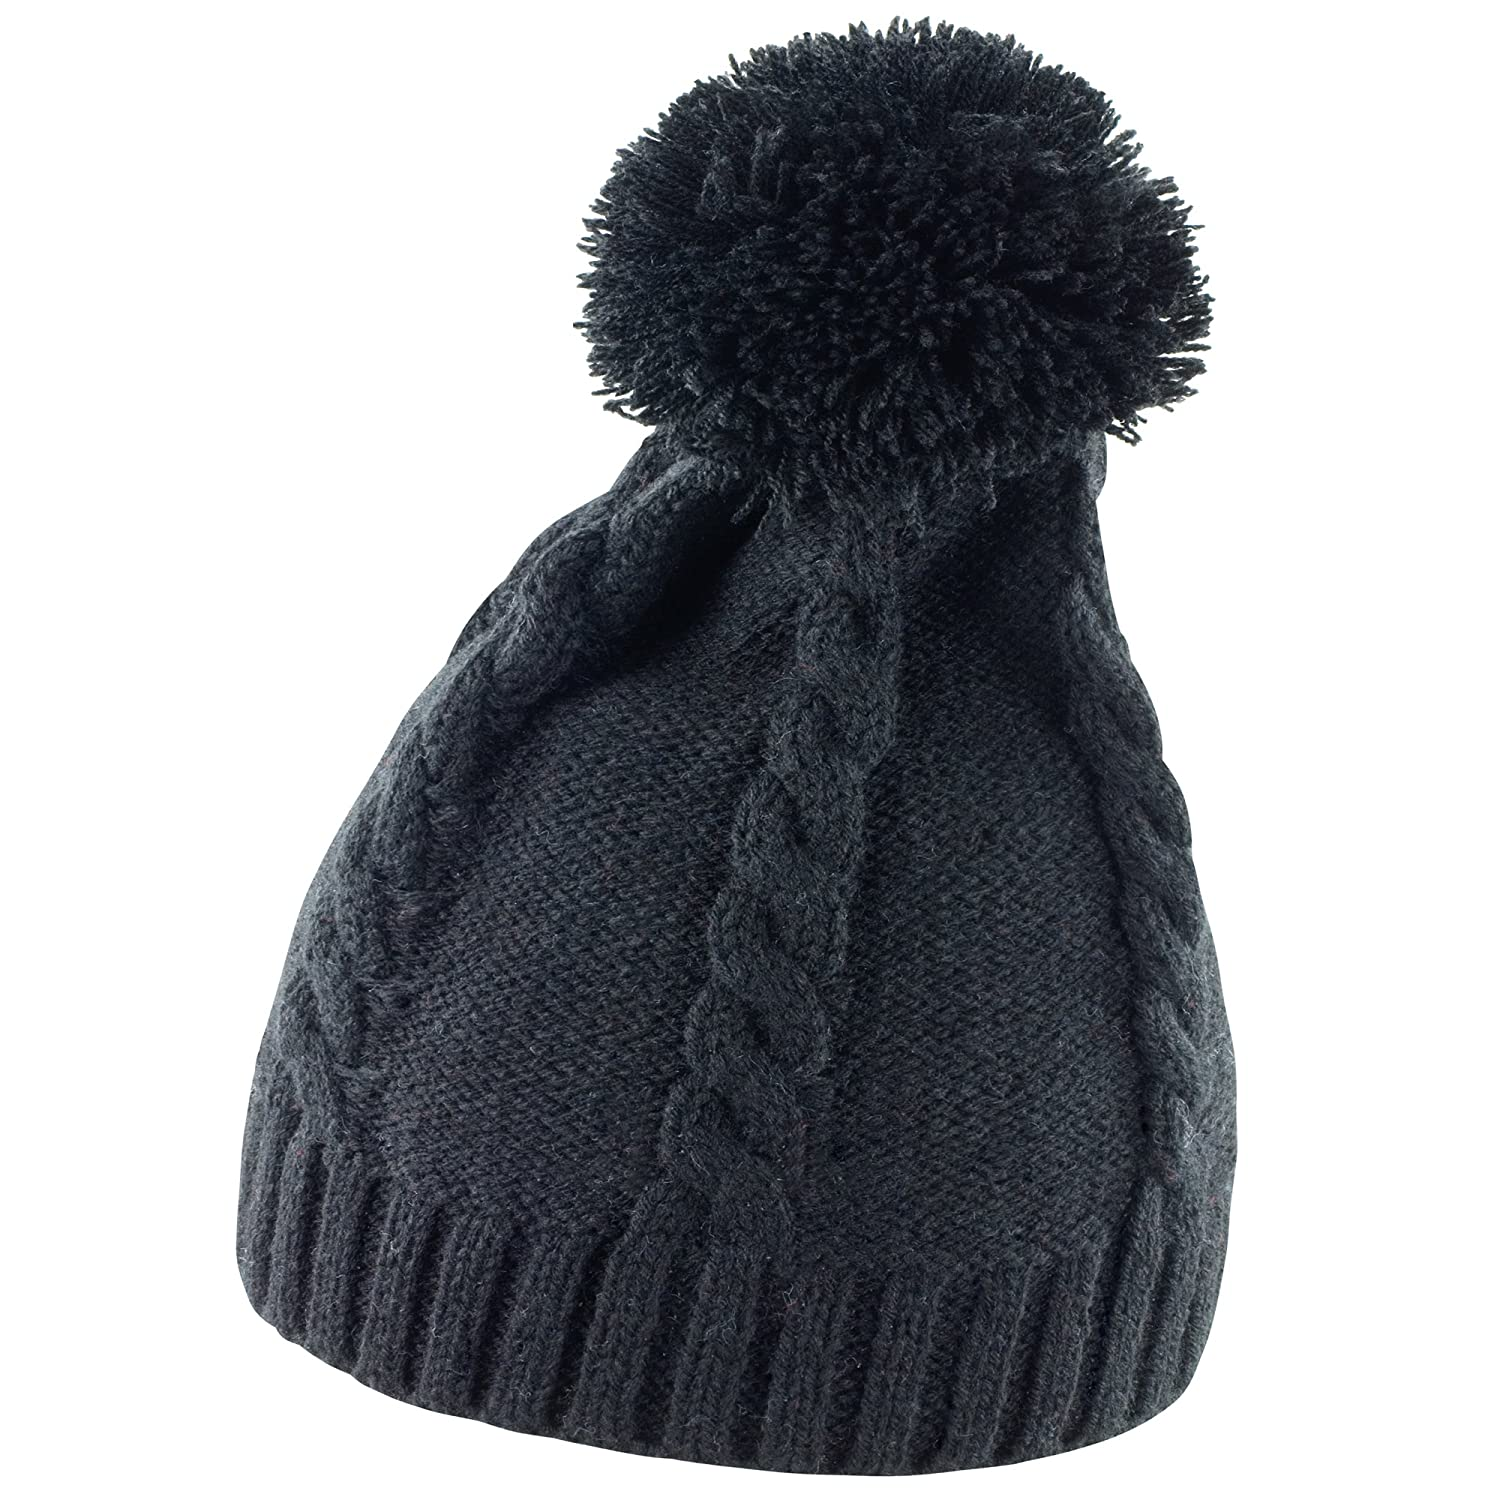 b2892d279bf Amazon.com  Result Ladies Womens Cable Knit Pom Pom Winter Beanie Hat (One  Size) (Black)  Clothing